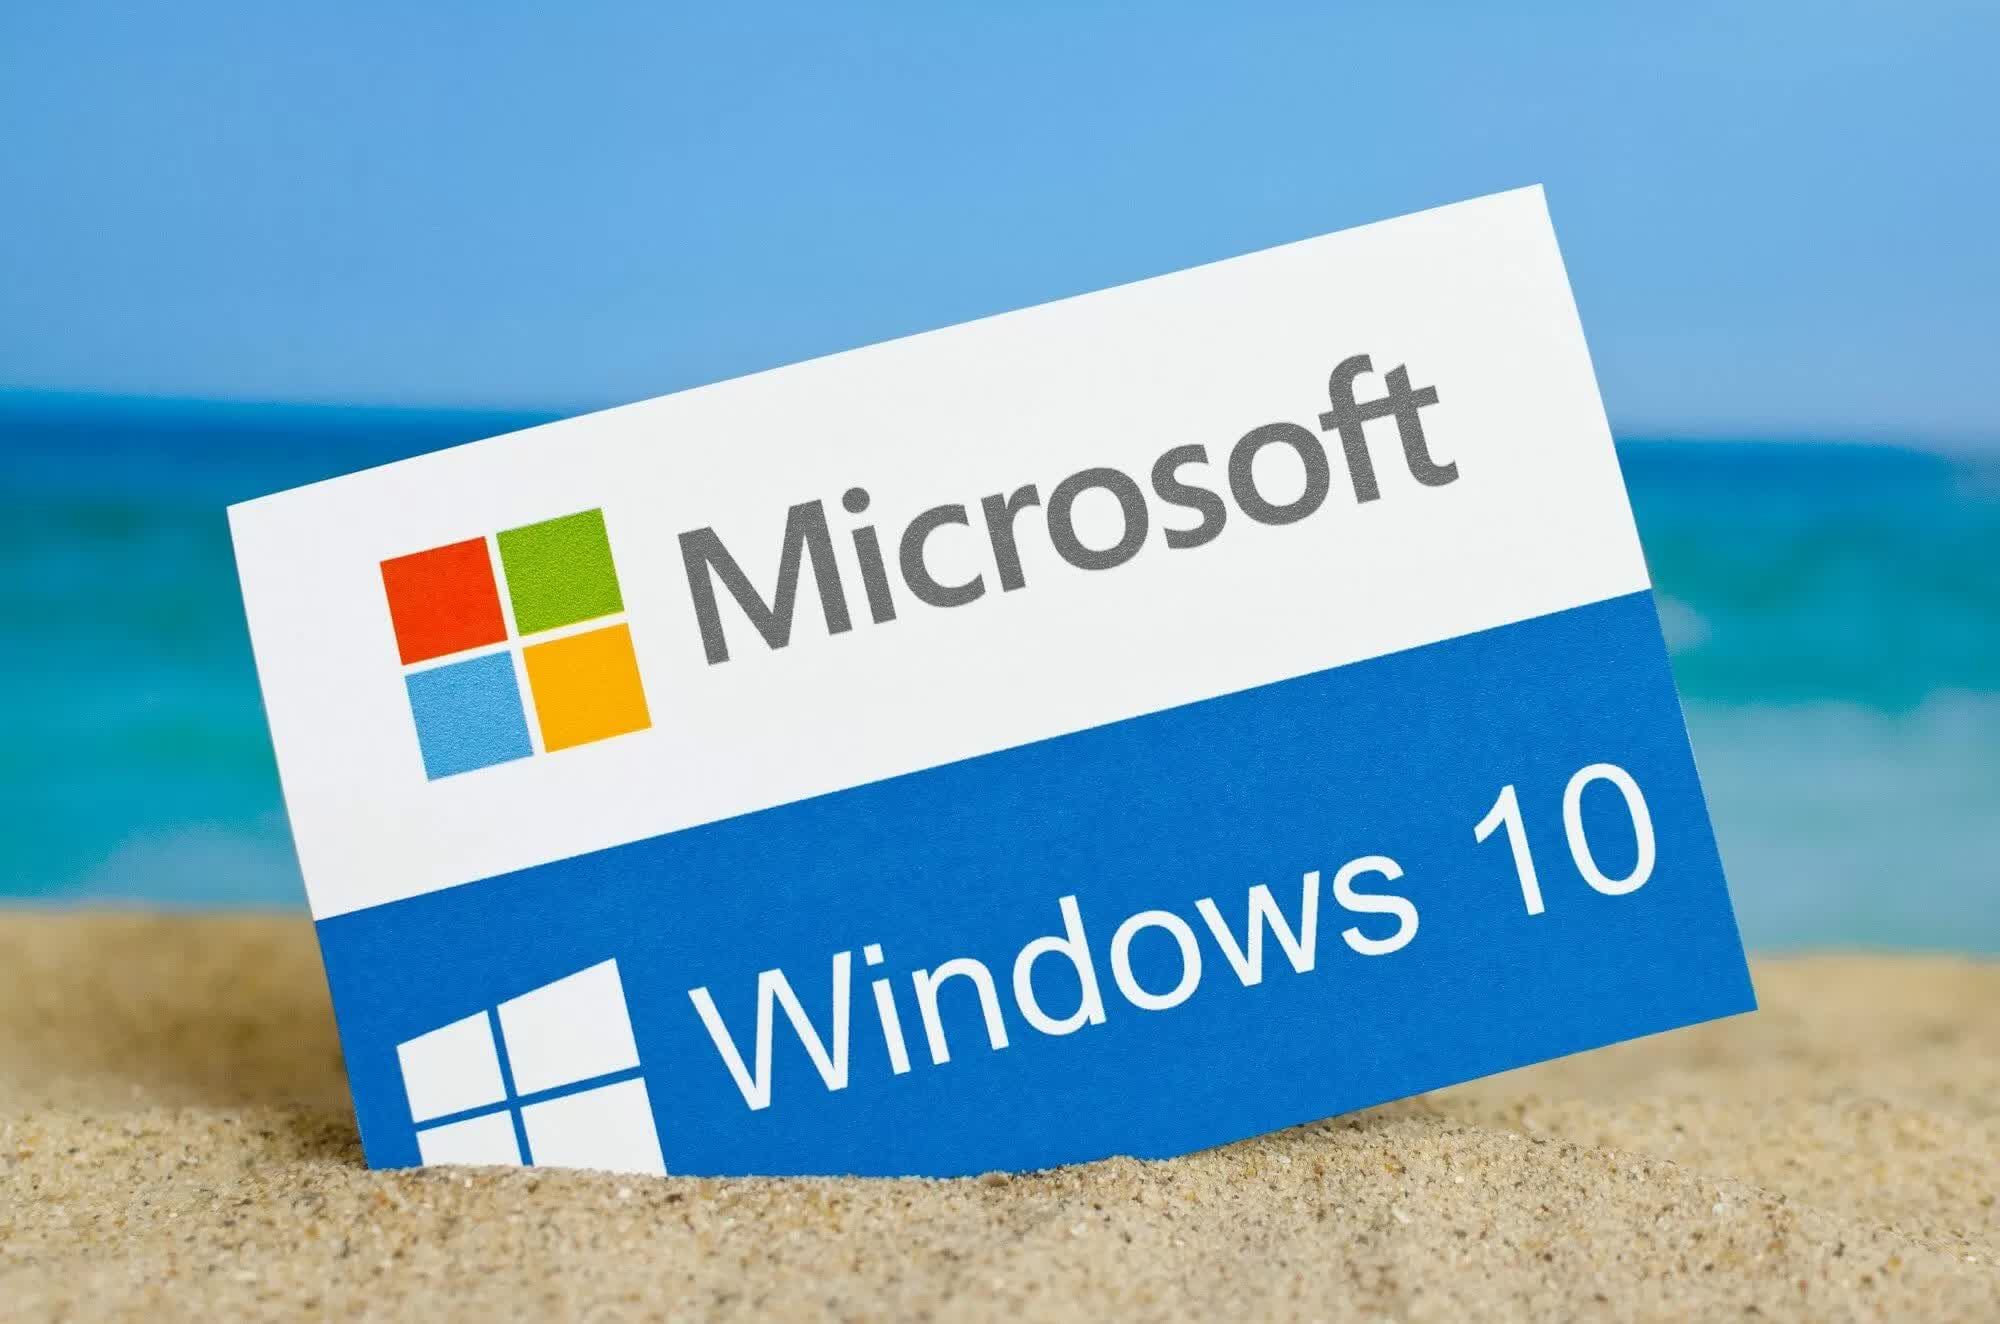 Recent Windows 10 security update borks gaming with unstable frame rates, boot loops, and more